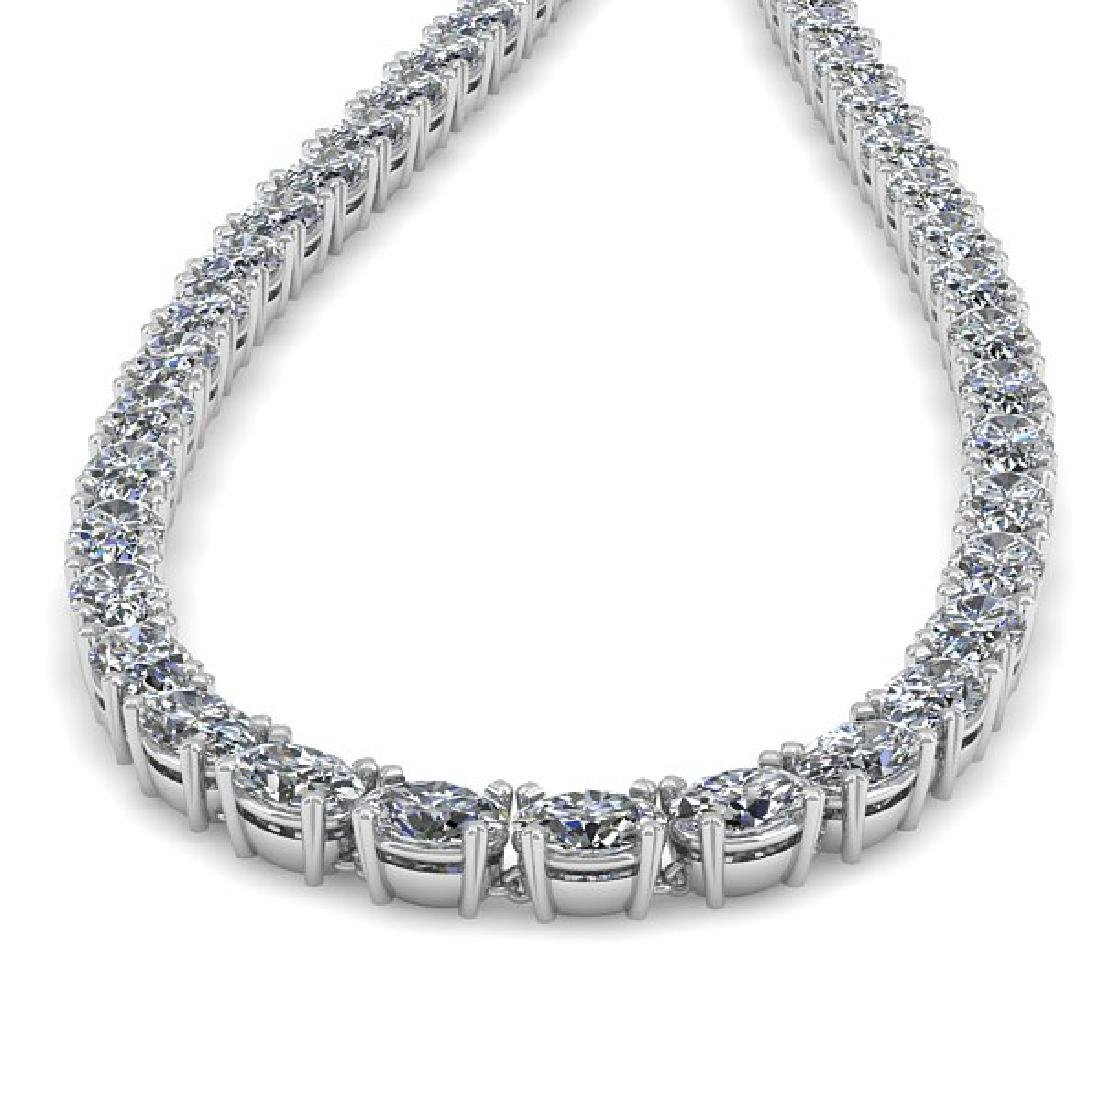 30 CTW Oval Cut Certified SI Diamond Necklace 18K White - 2